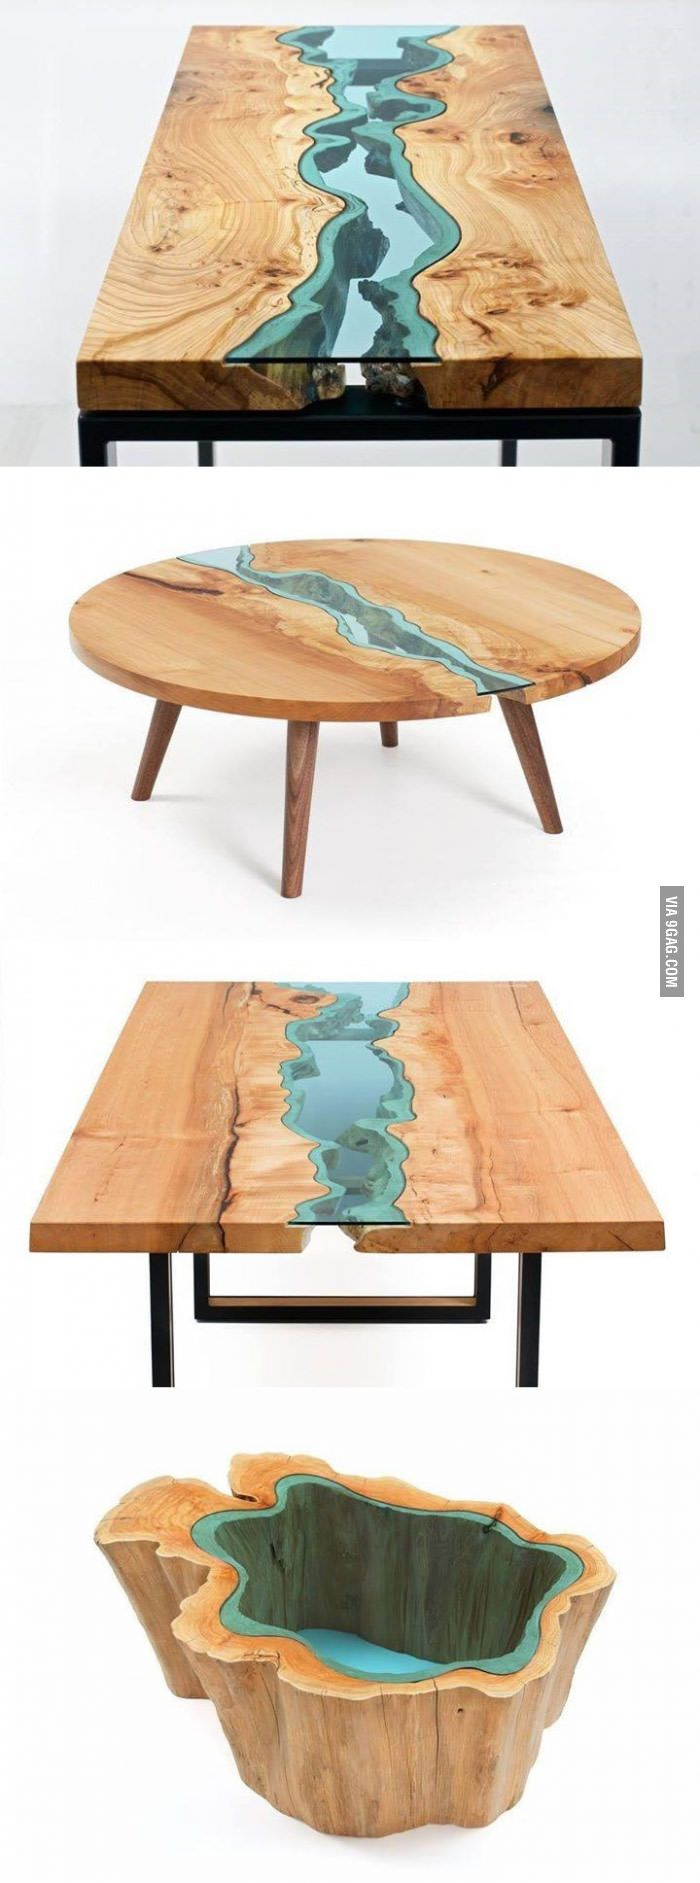 Wood Tables Embedded With Glass Rivers Driftwood Furniture Resin Furniture Wood Table [ 1883 x 700 Pixel ]